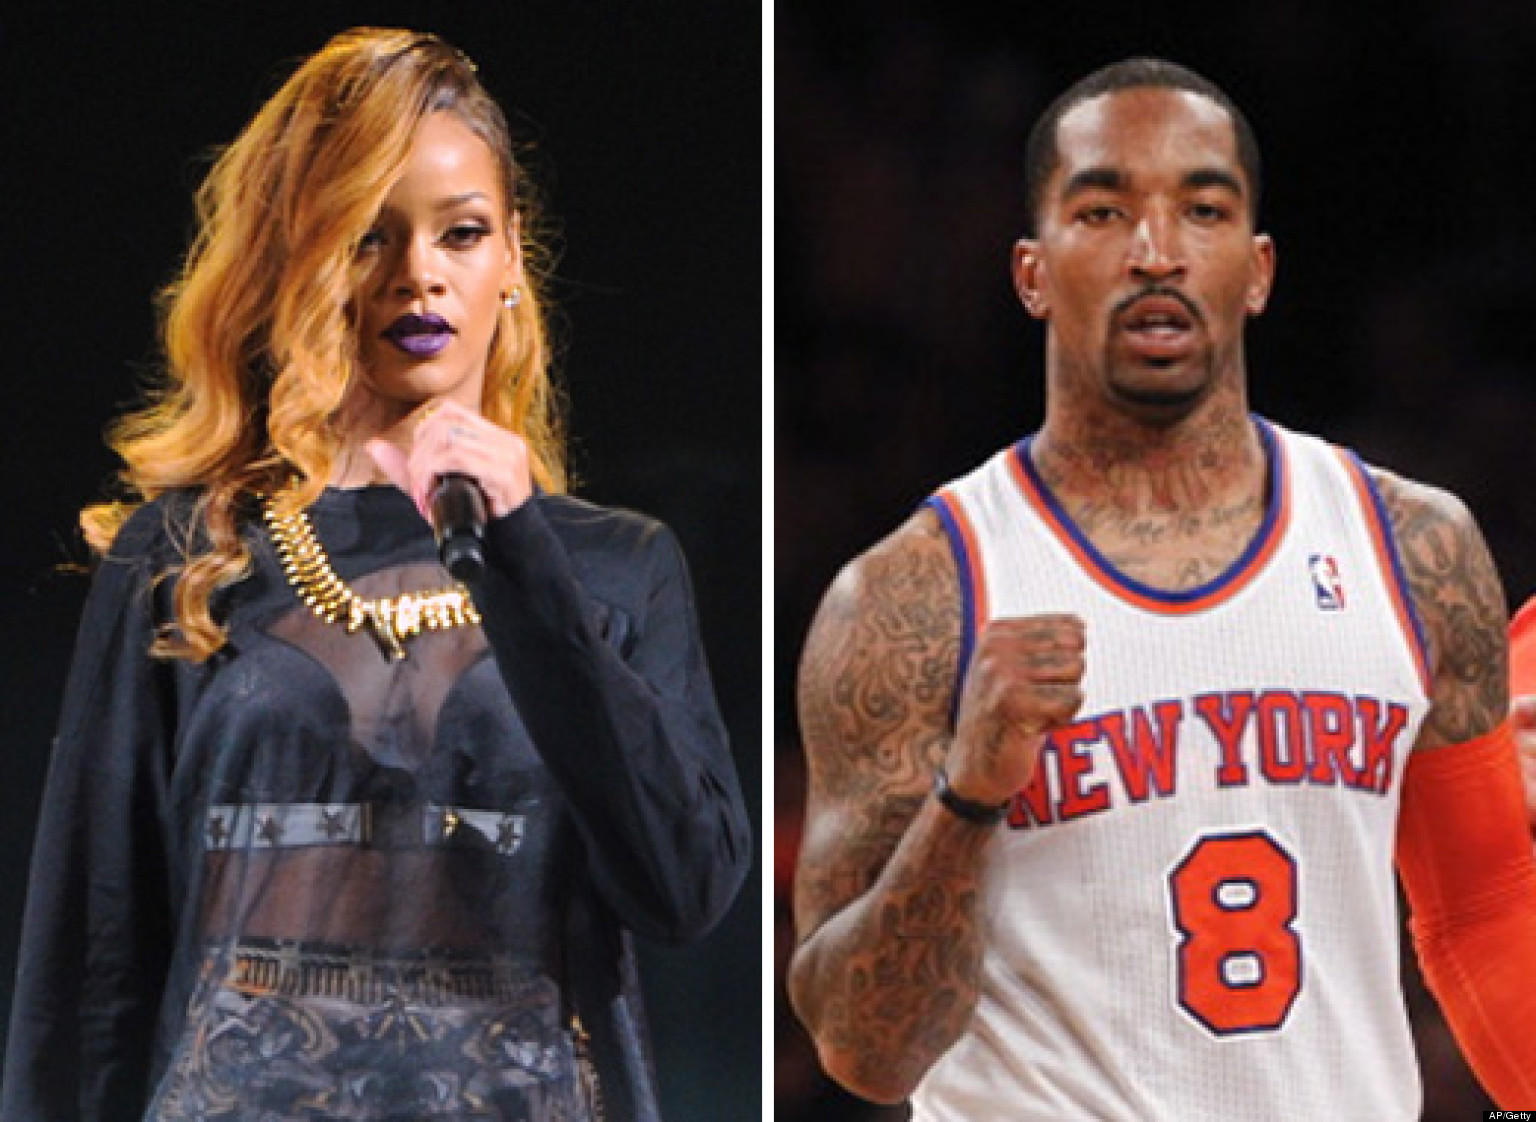 jr smith vs rihanna instagram comment allegedly by